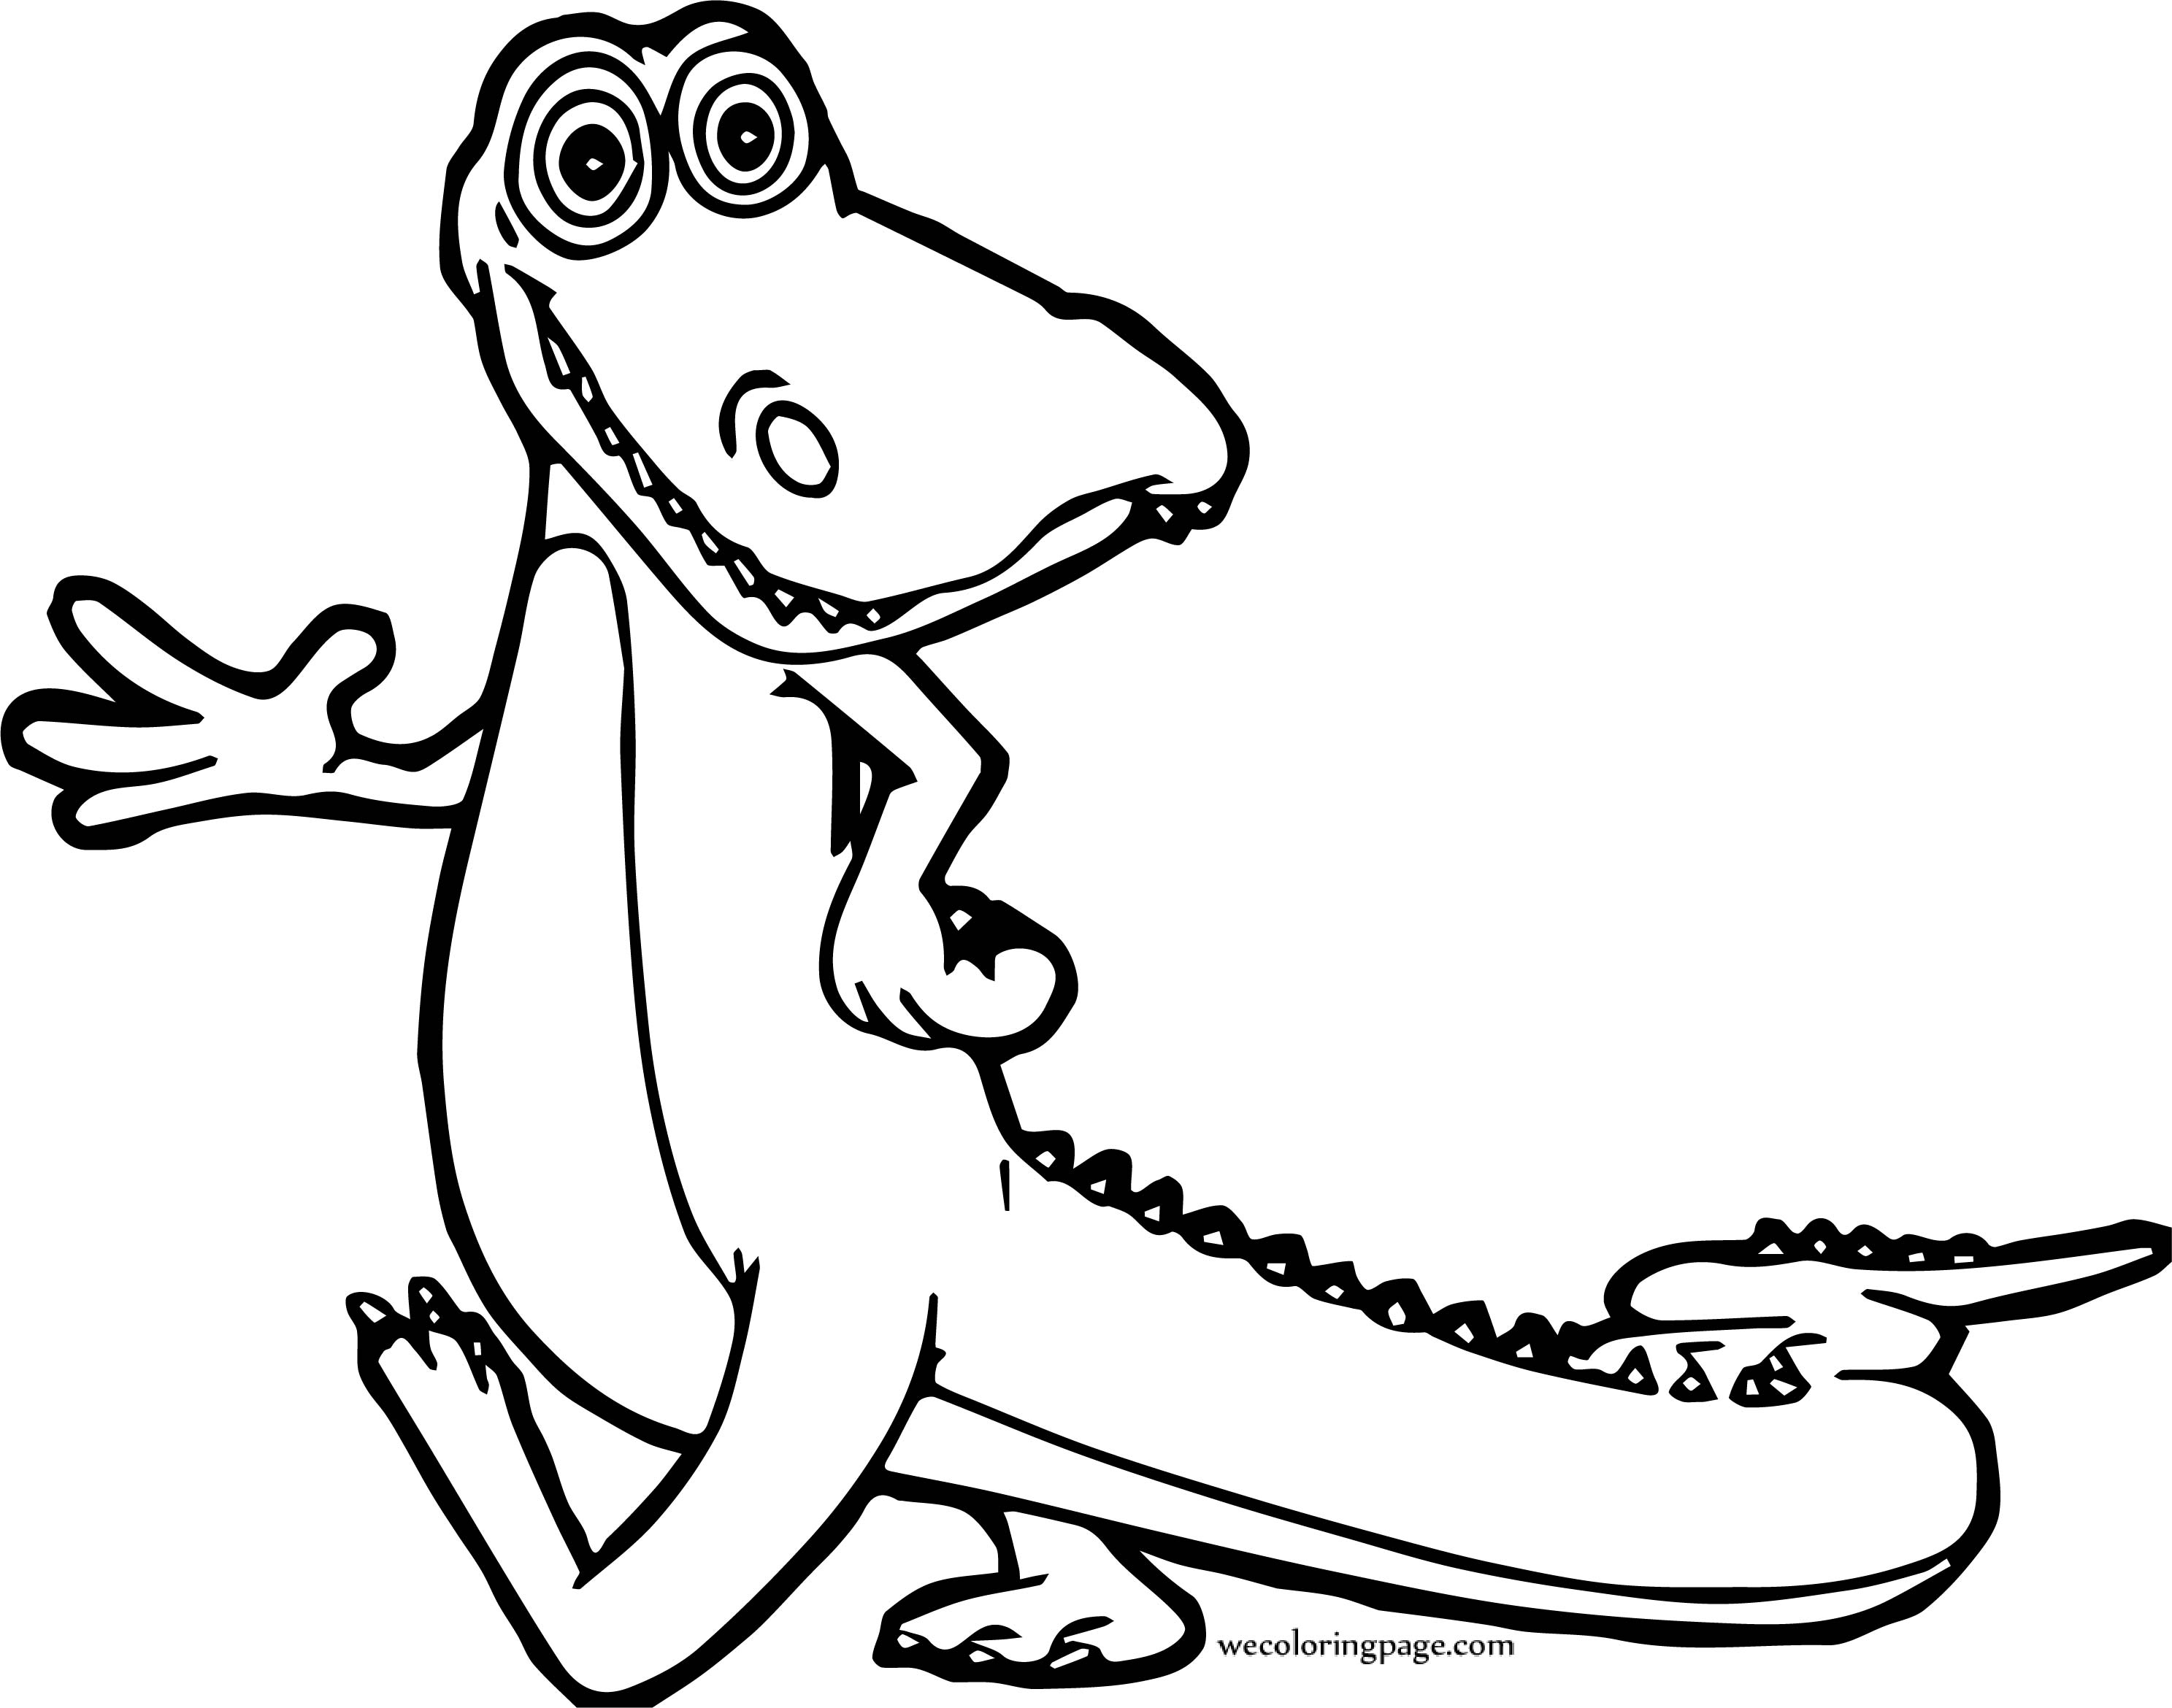 Crocodile Alligator Hello Coloring Page